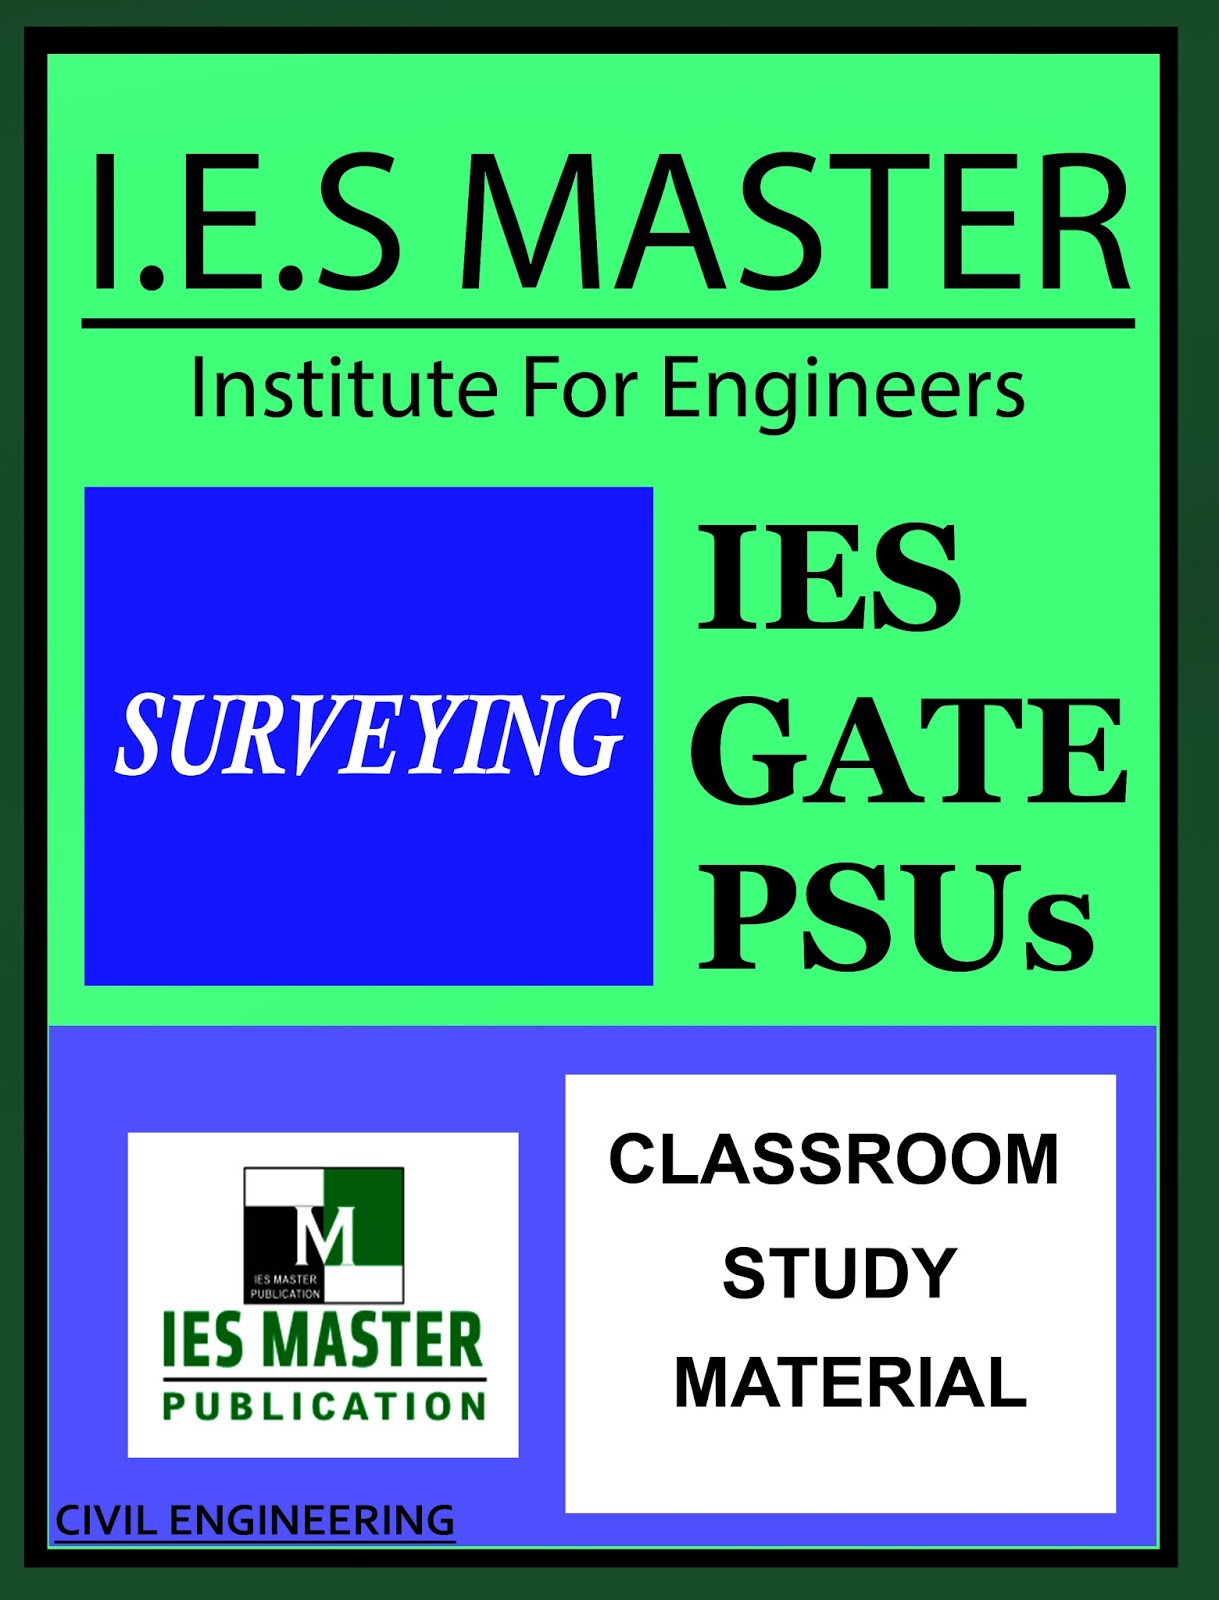 GATE MATERIAL] IES MASTER Surveying Study Material for GATE